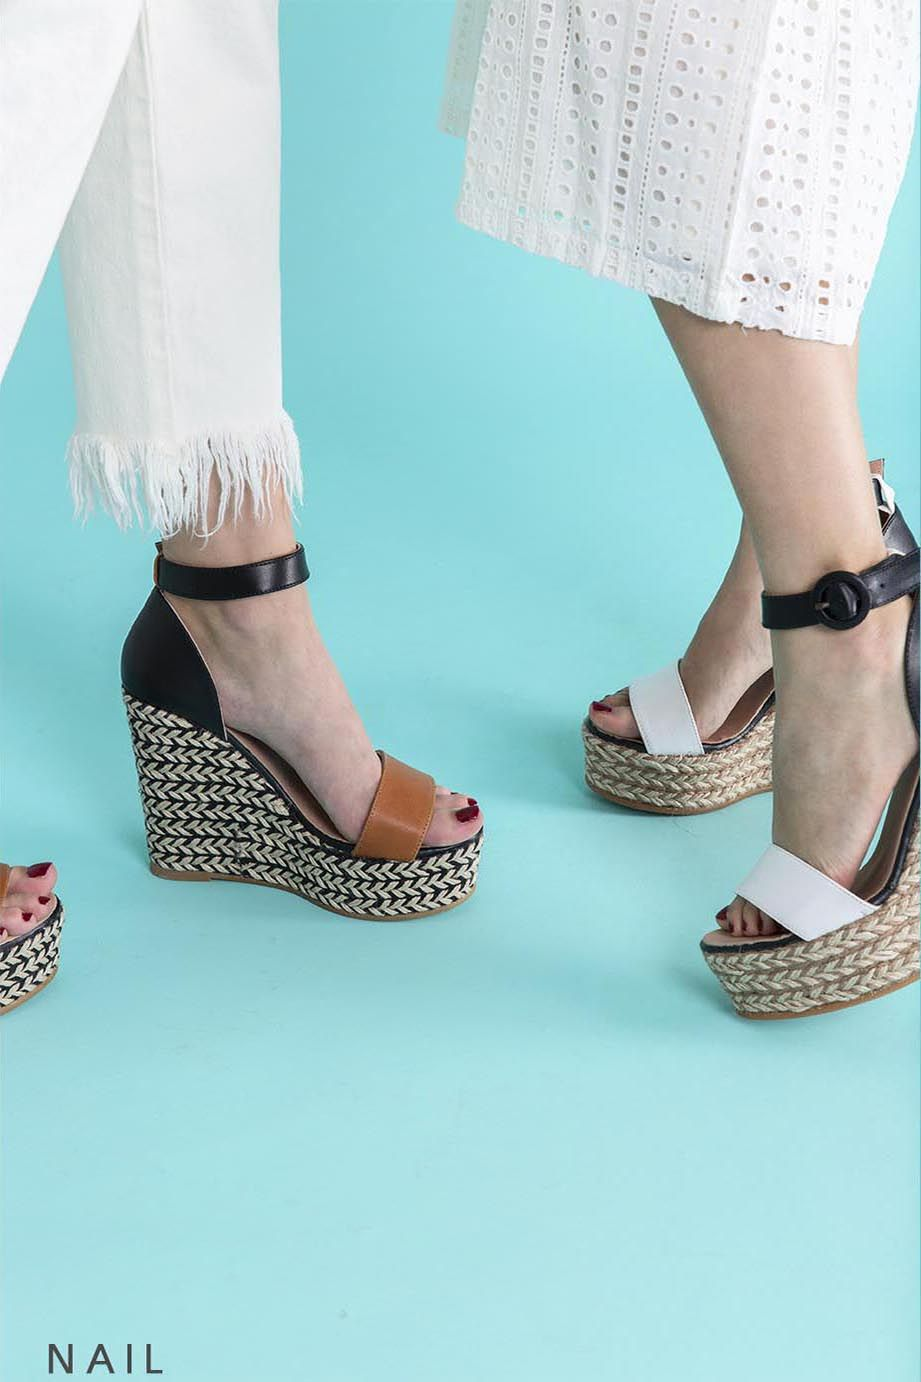 be40854c944 GAIMO SS17 Nail Wedge Espadrille Sandals